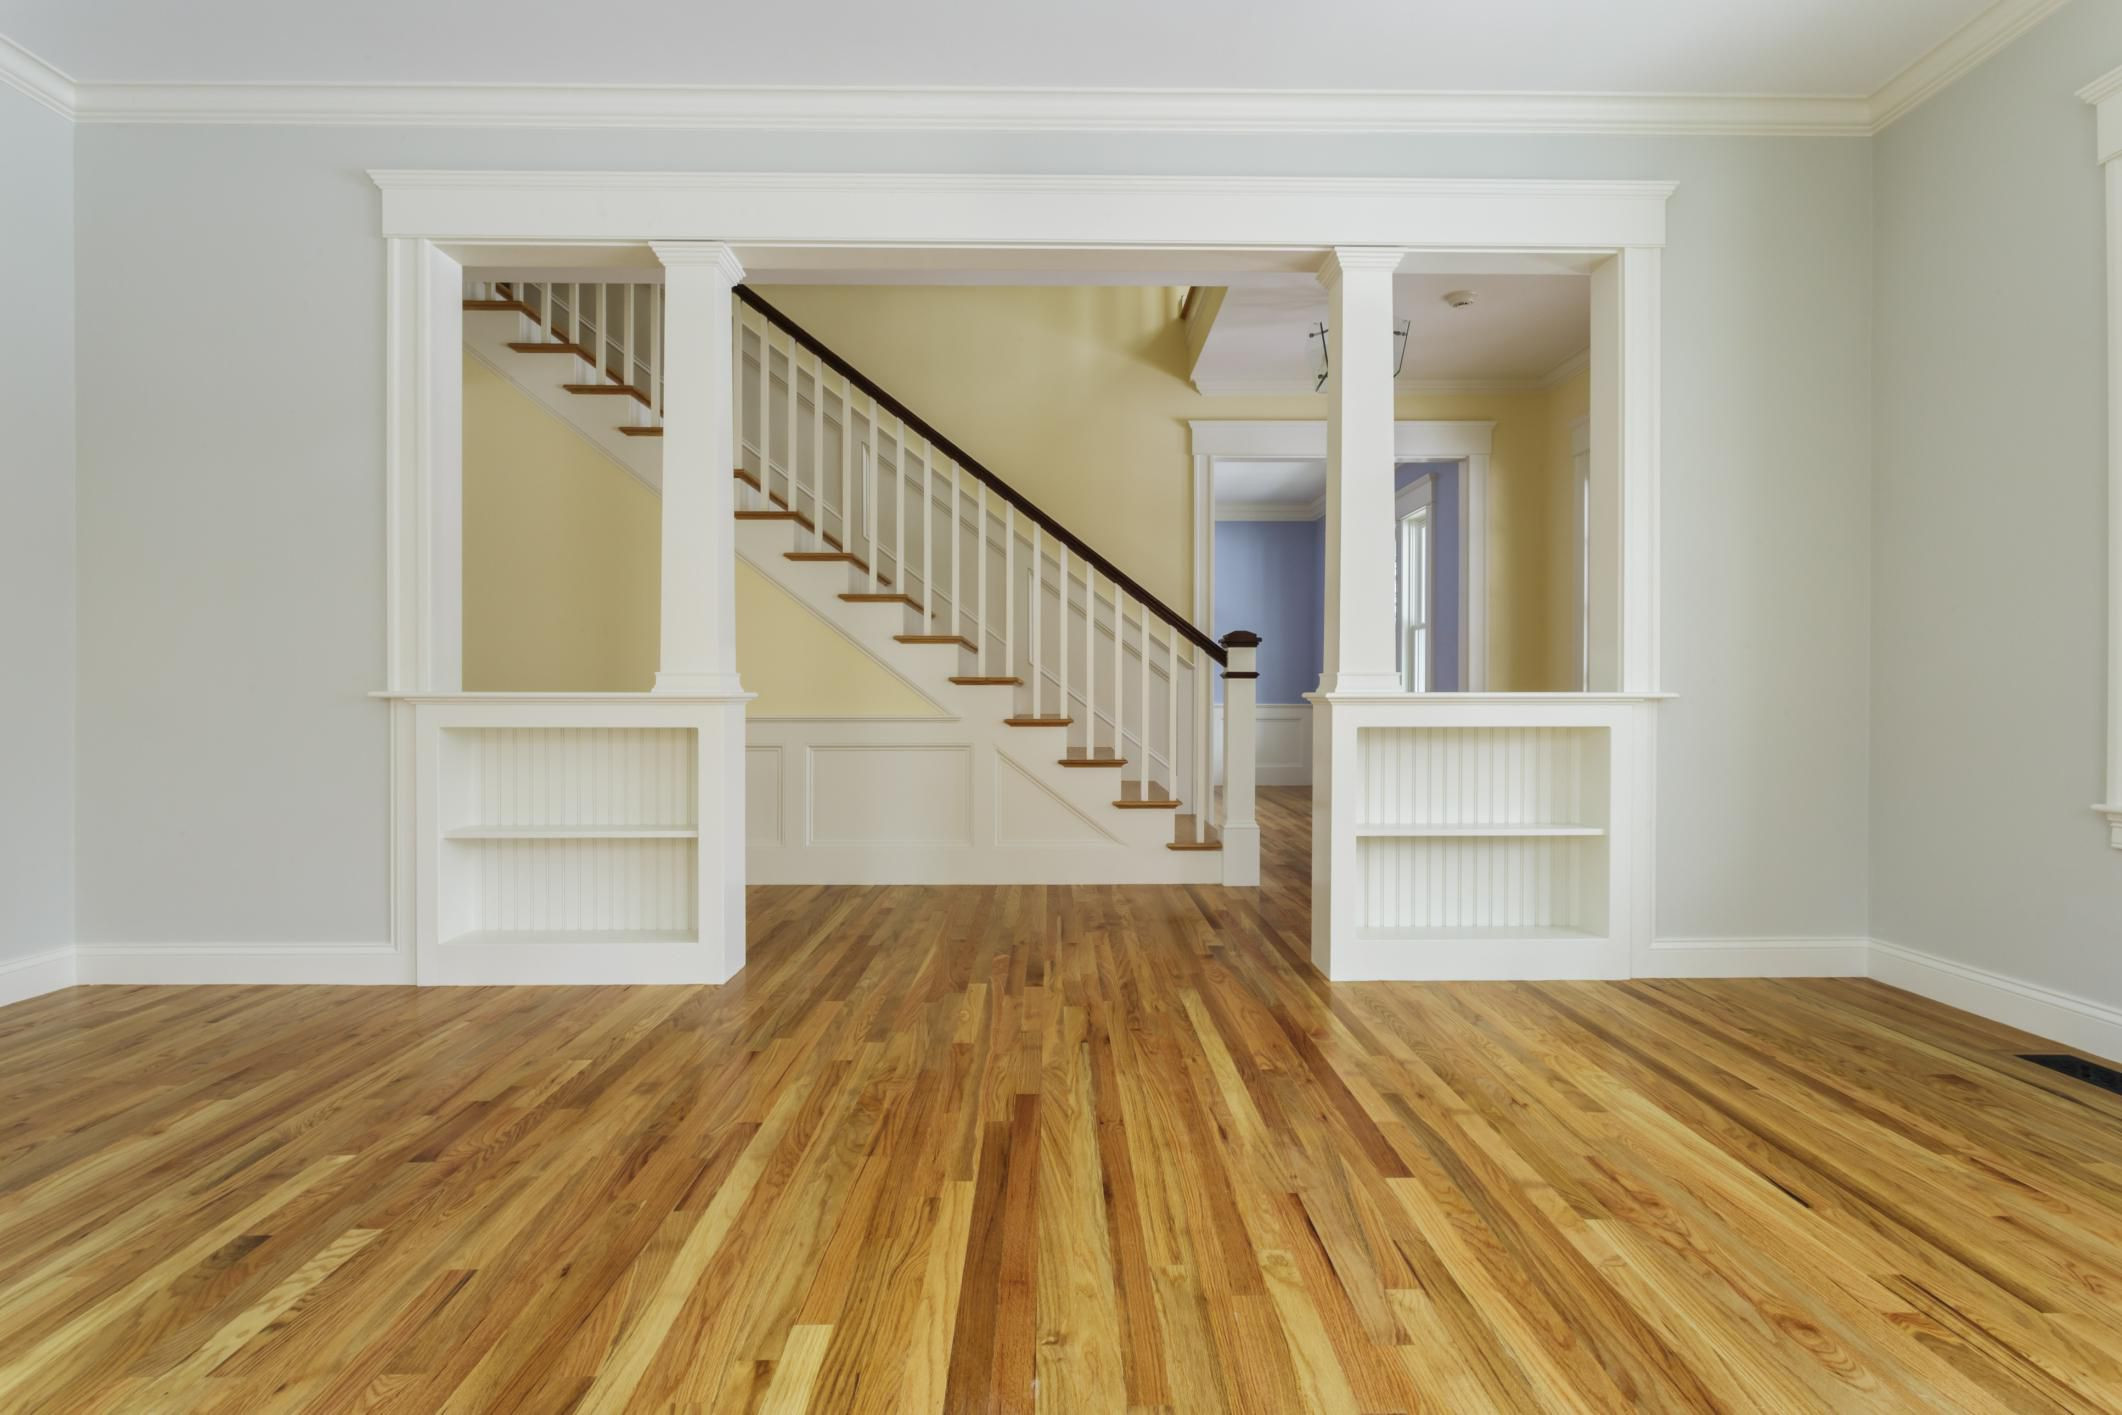 cost to refinish hardwood floors professionally of guide to solid hardwood floors regarding 168686571 56a49f213df78cf772834e24